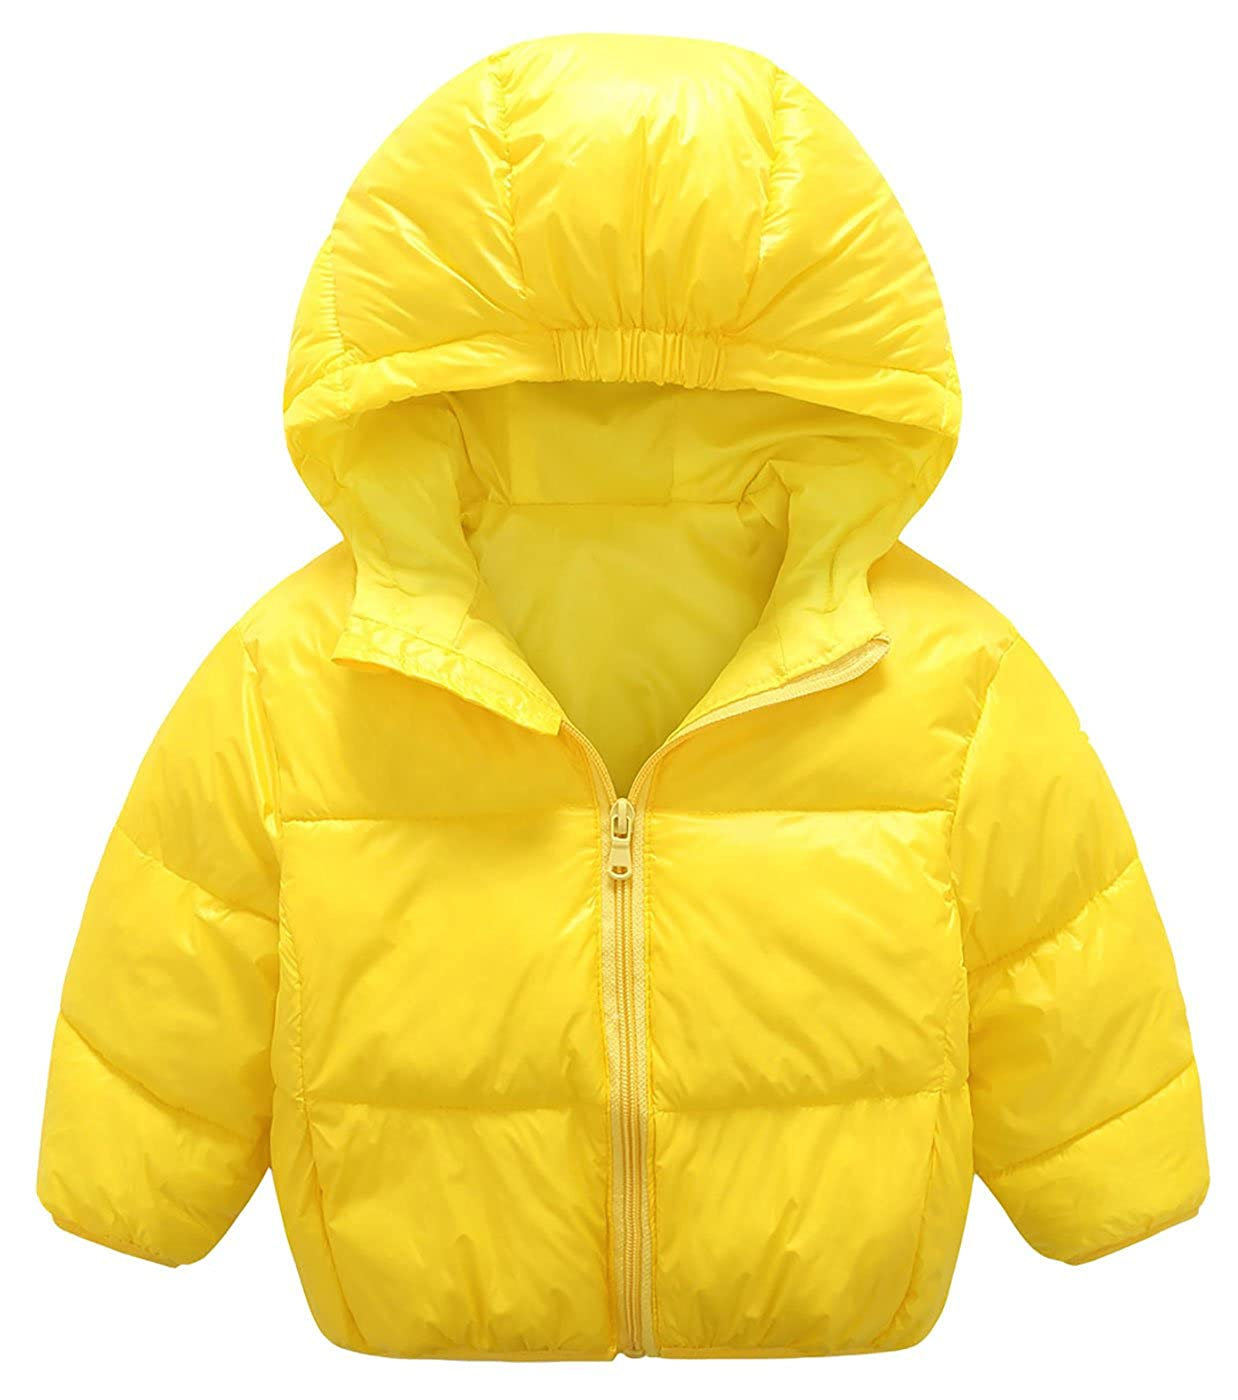 Mengxiaoya Baby Boys Girls Hoodie Down Jacket Lightweight Puffer Coat Windproof Cotton Yellow 12-24Months